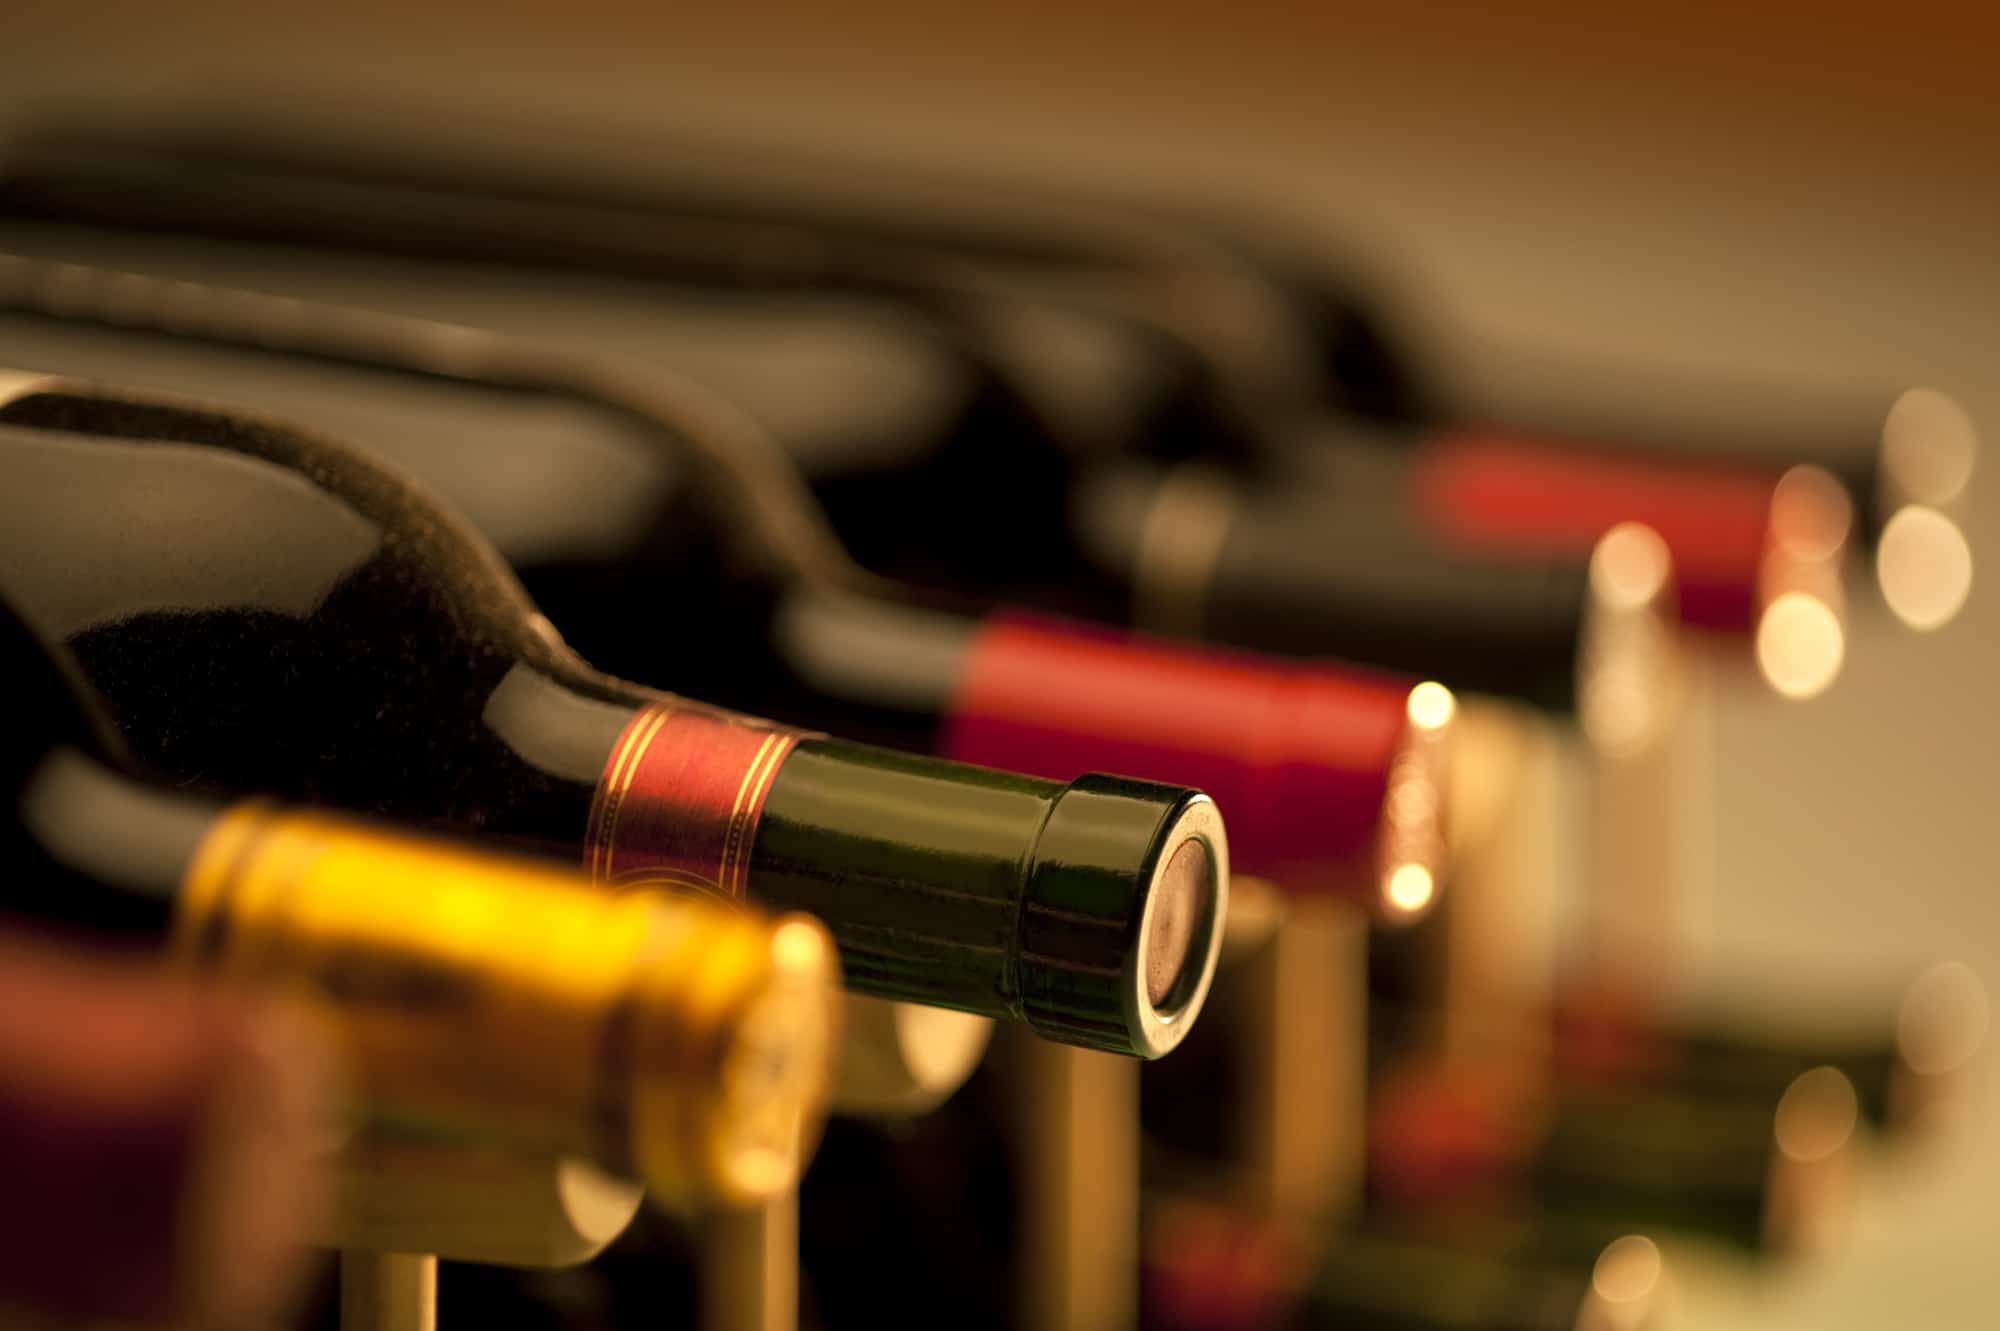 Several bottles of wine set on their side